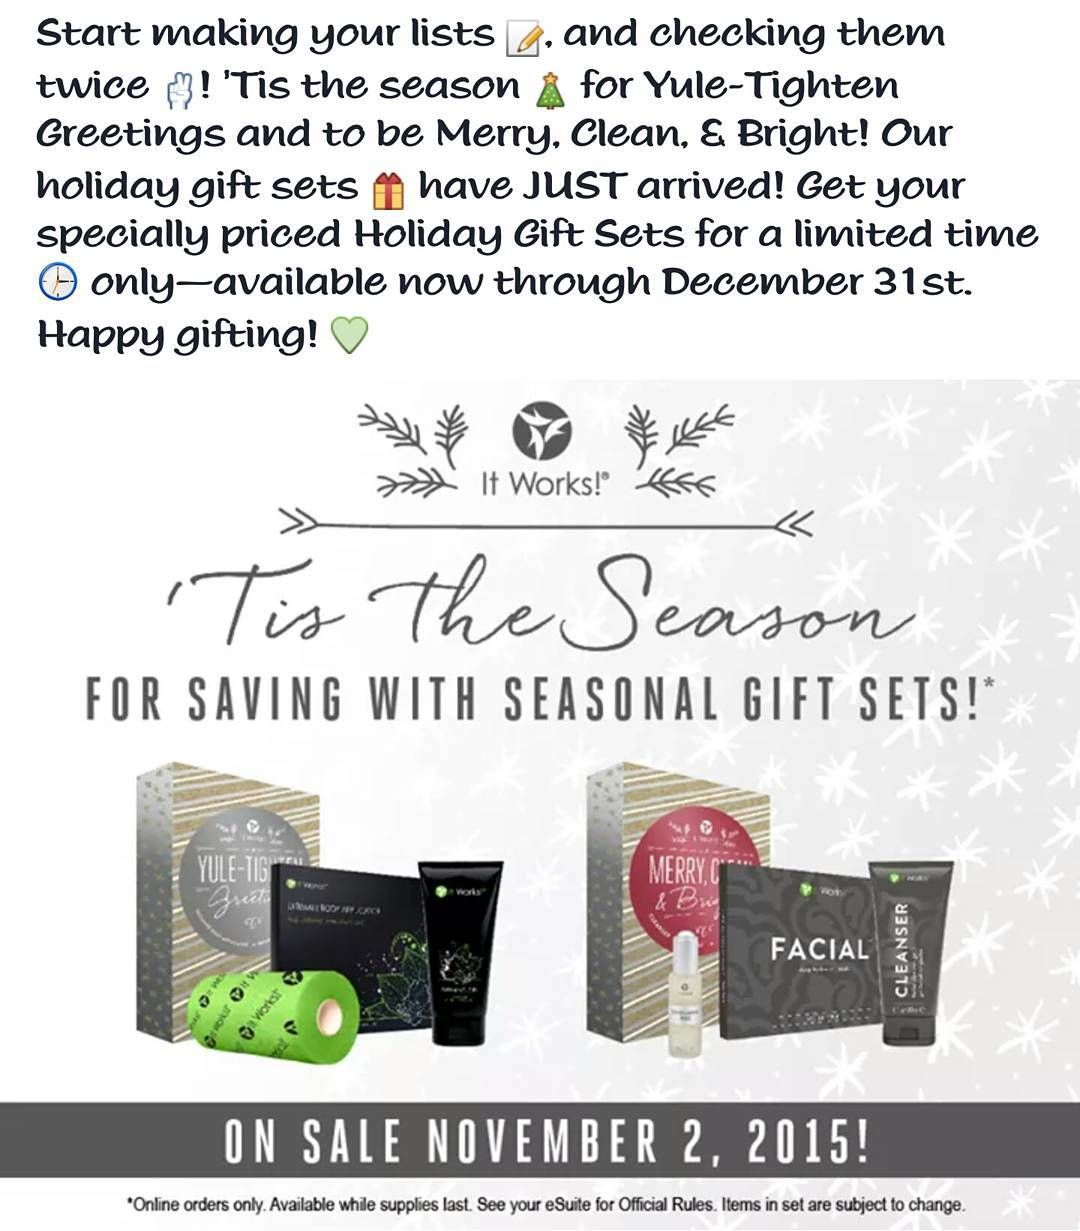 #getslimwithcasey #itworks #itworksglobal #itworksfamily #itworksadventure #itworksparty #joinitworks #jointhefamily #joinmyteam #joinmyfamily #jointhemovement #jointheadventure #joinme #joinus #joinnow #christmasiscoming #christmas #christmaspresents #gifts #presents #giftideas by morethanwraps